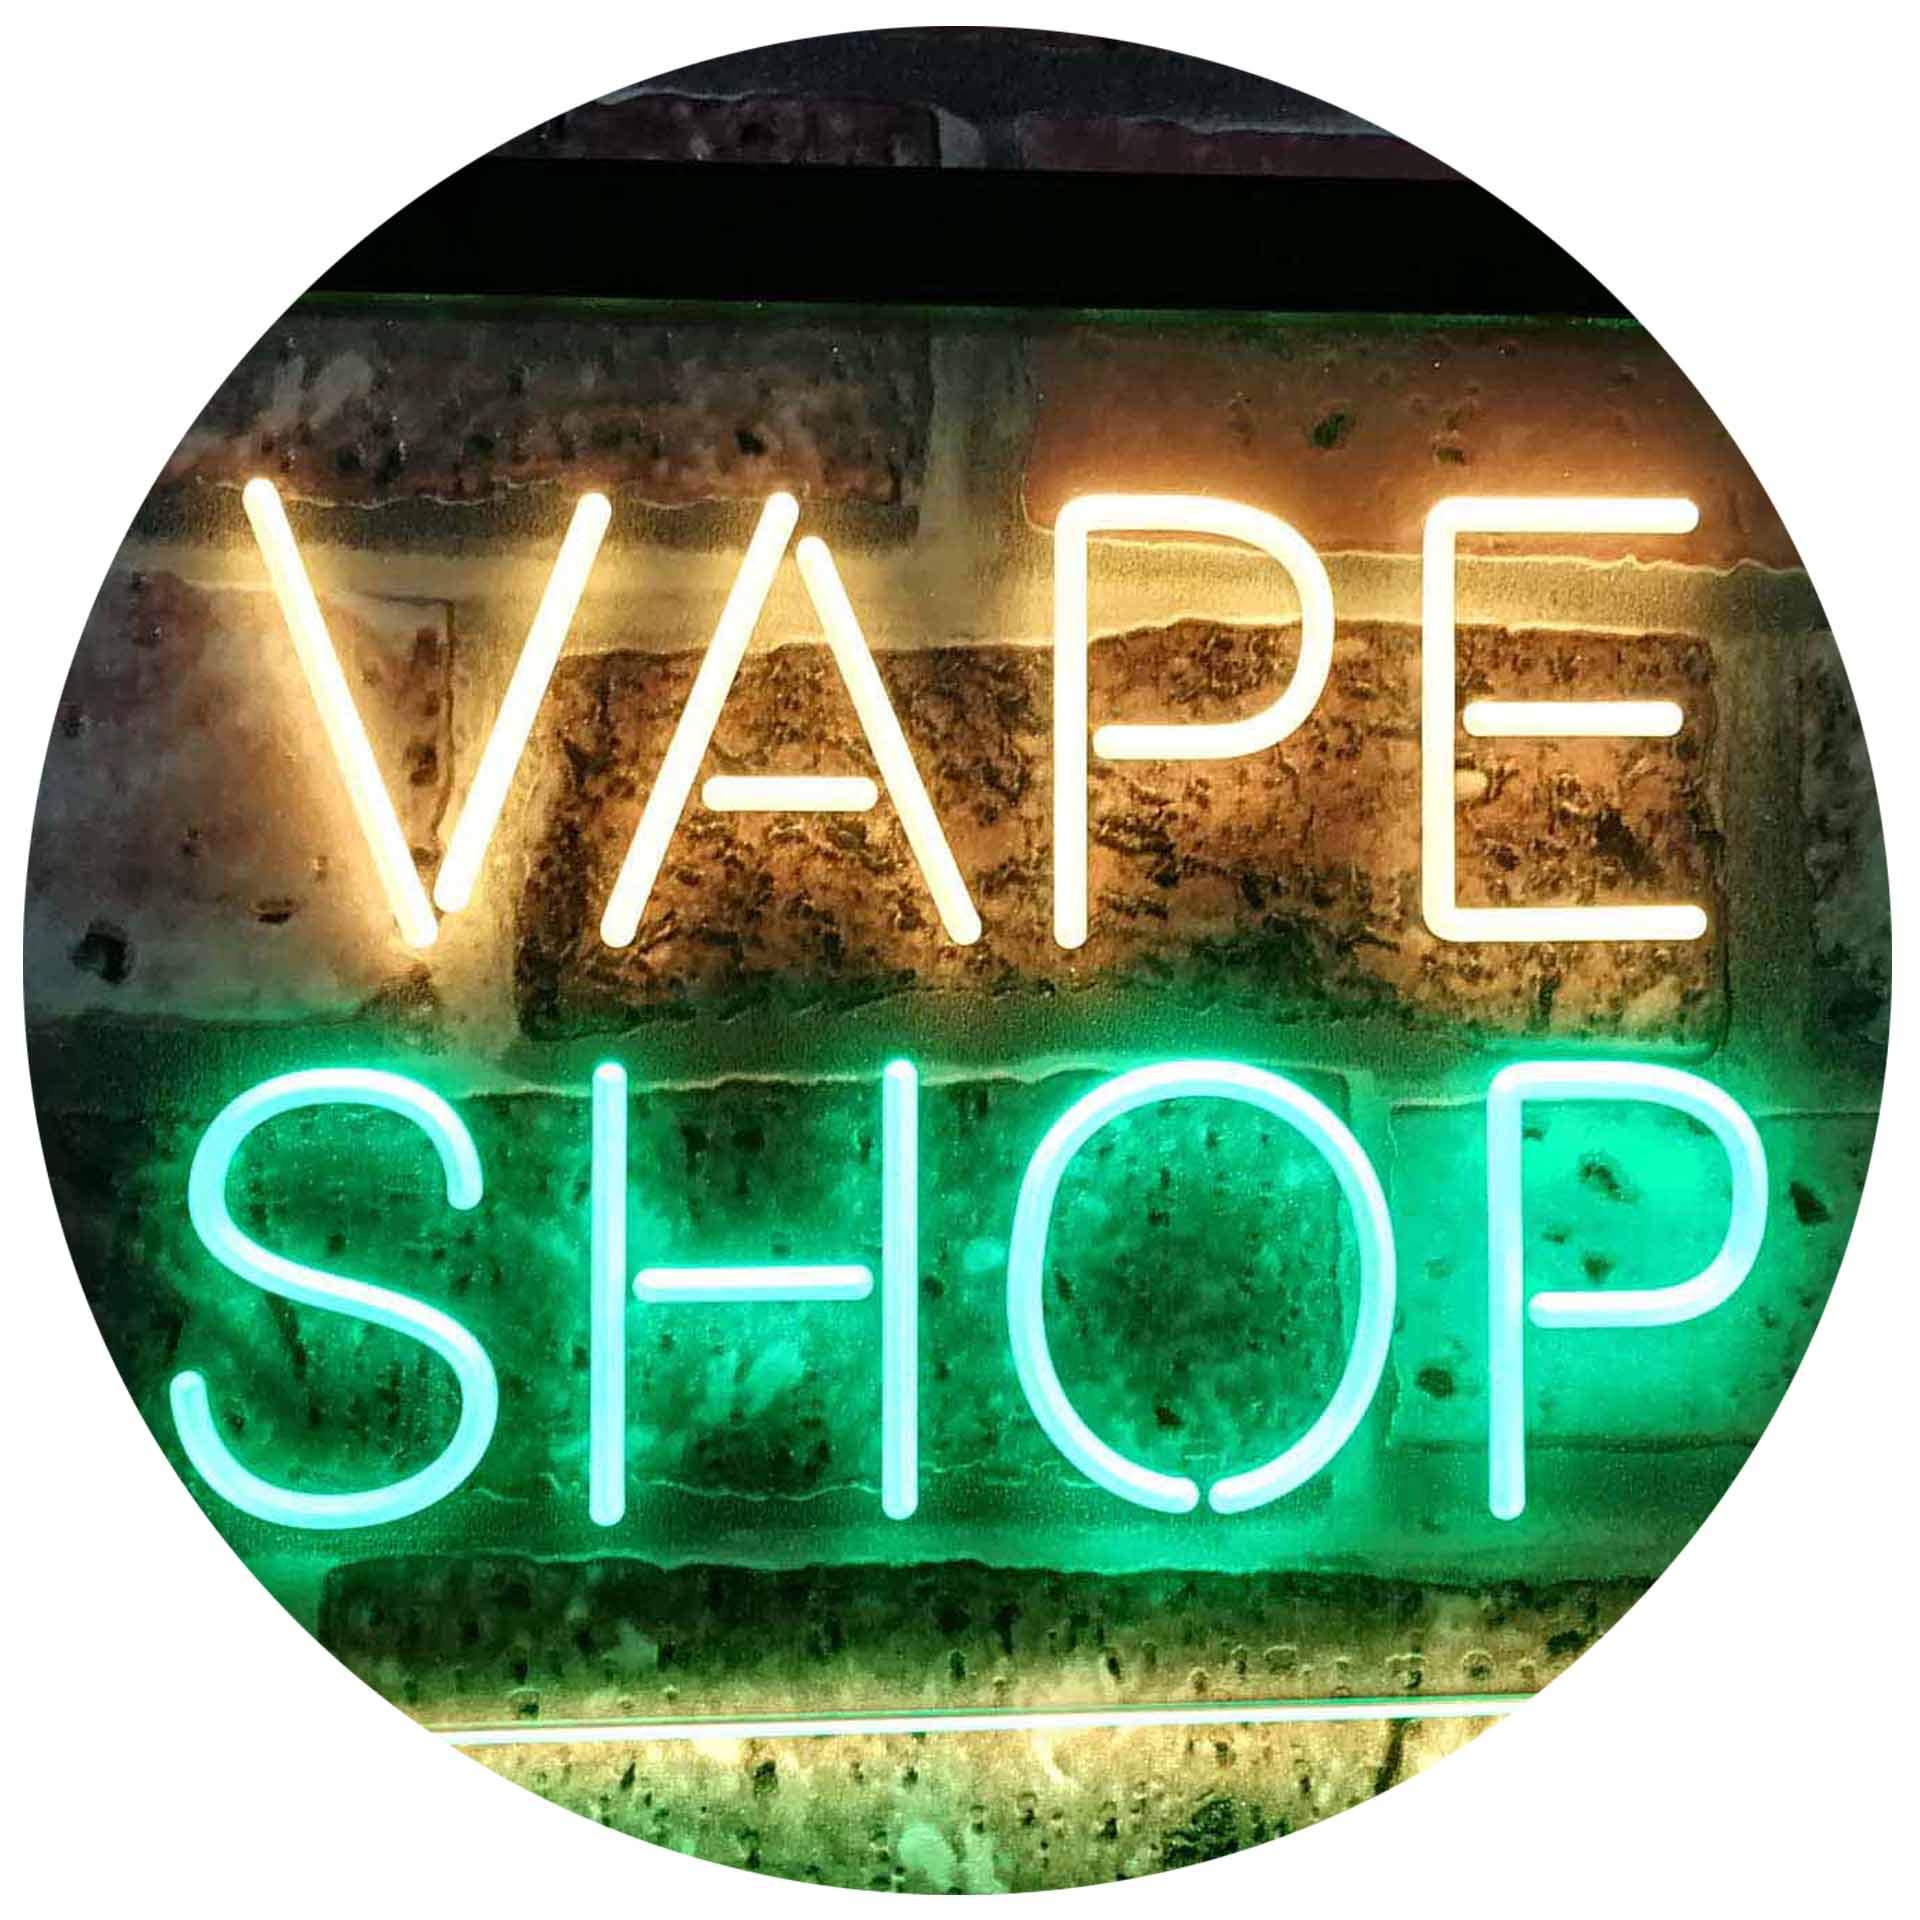 "ADVPRO Vape Shop Indoor Display Dual Color LED Neon Sign Green & Yellow 16"" x 12"" st6s43-i3018-gy"